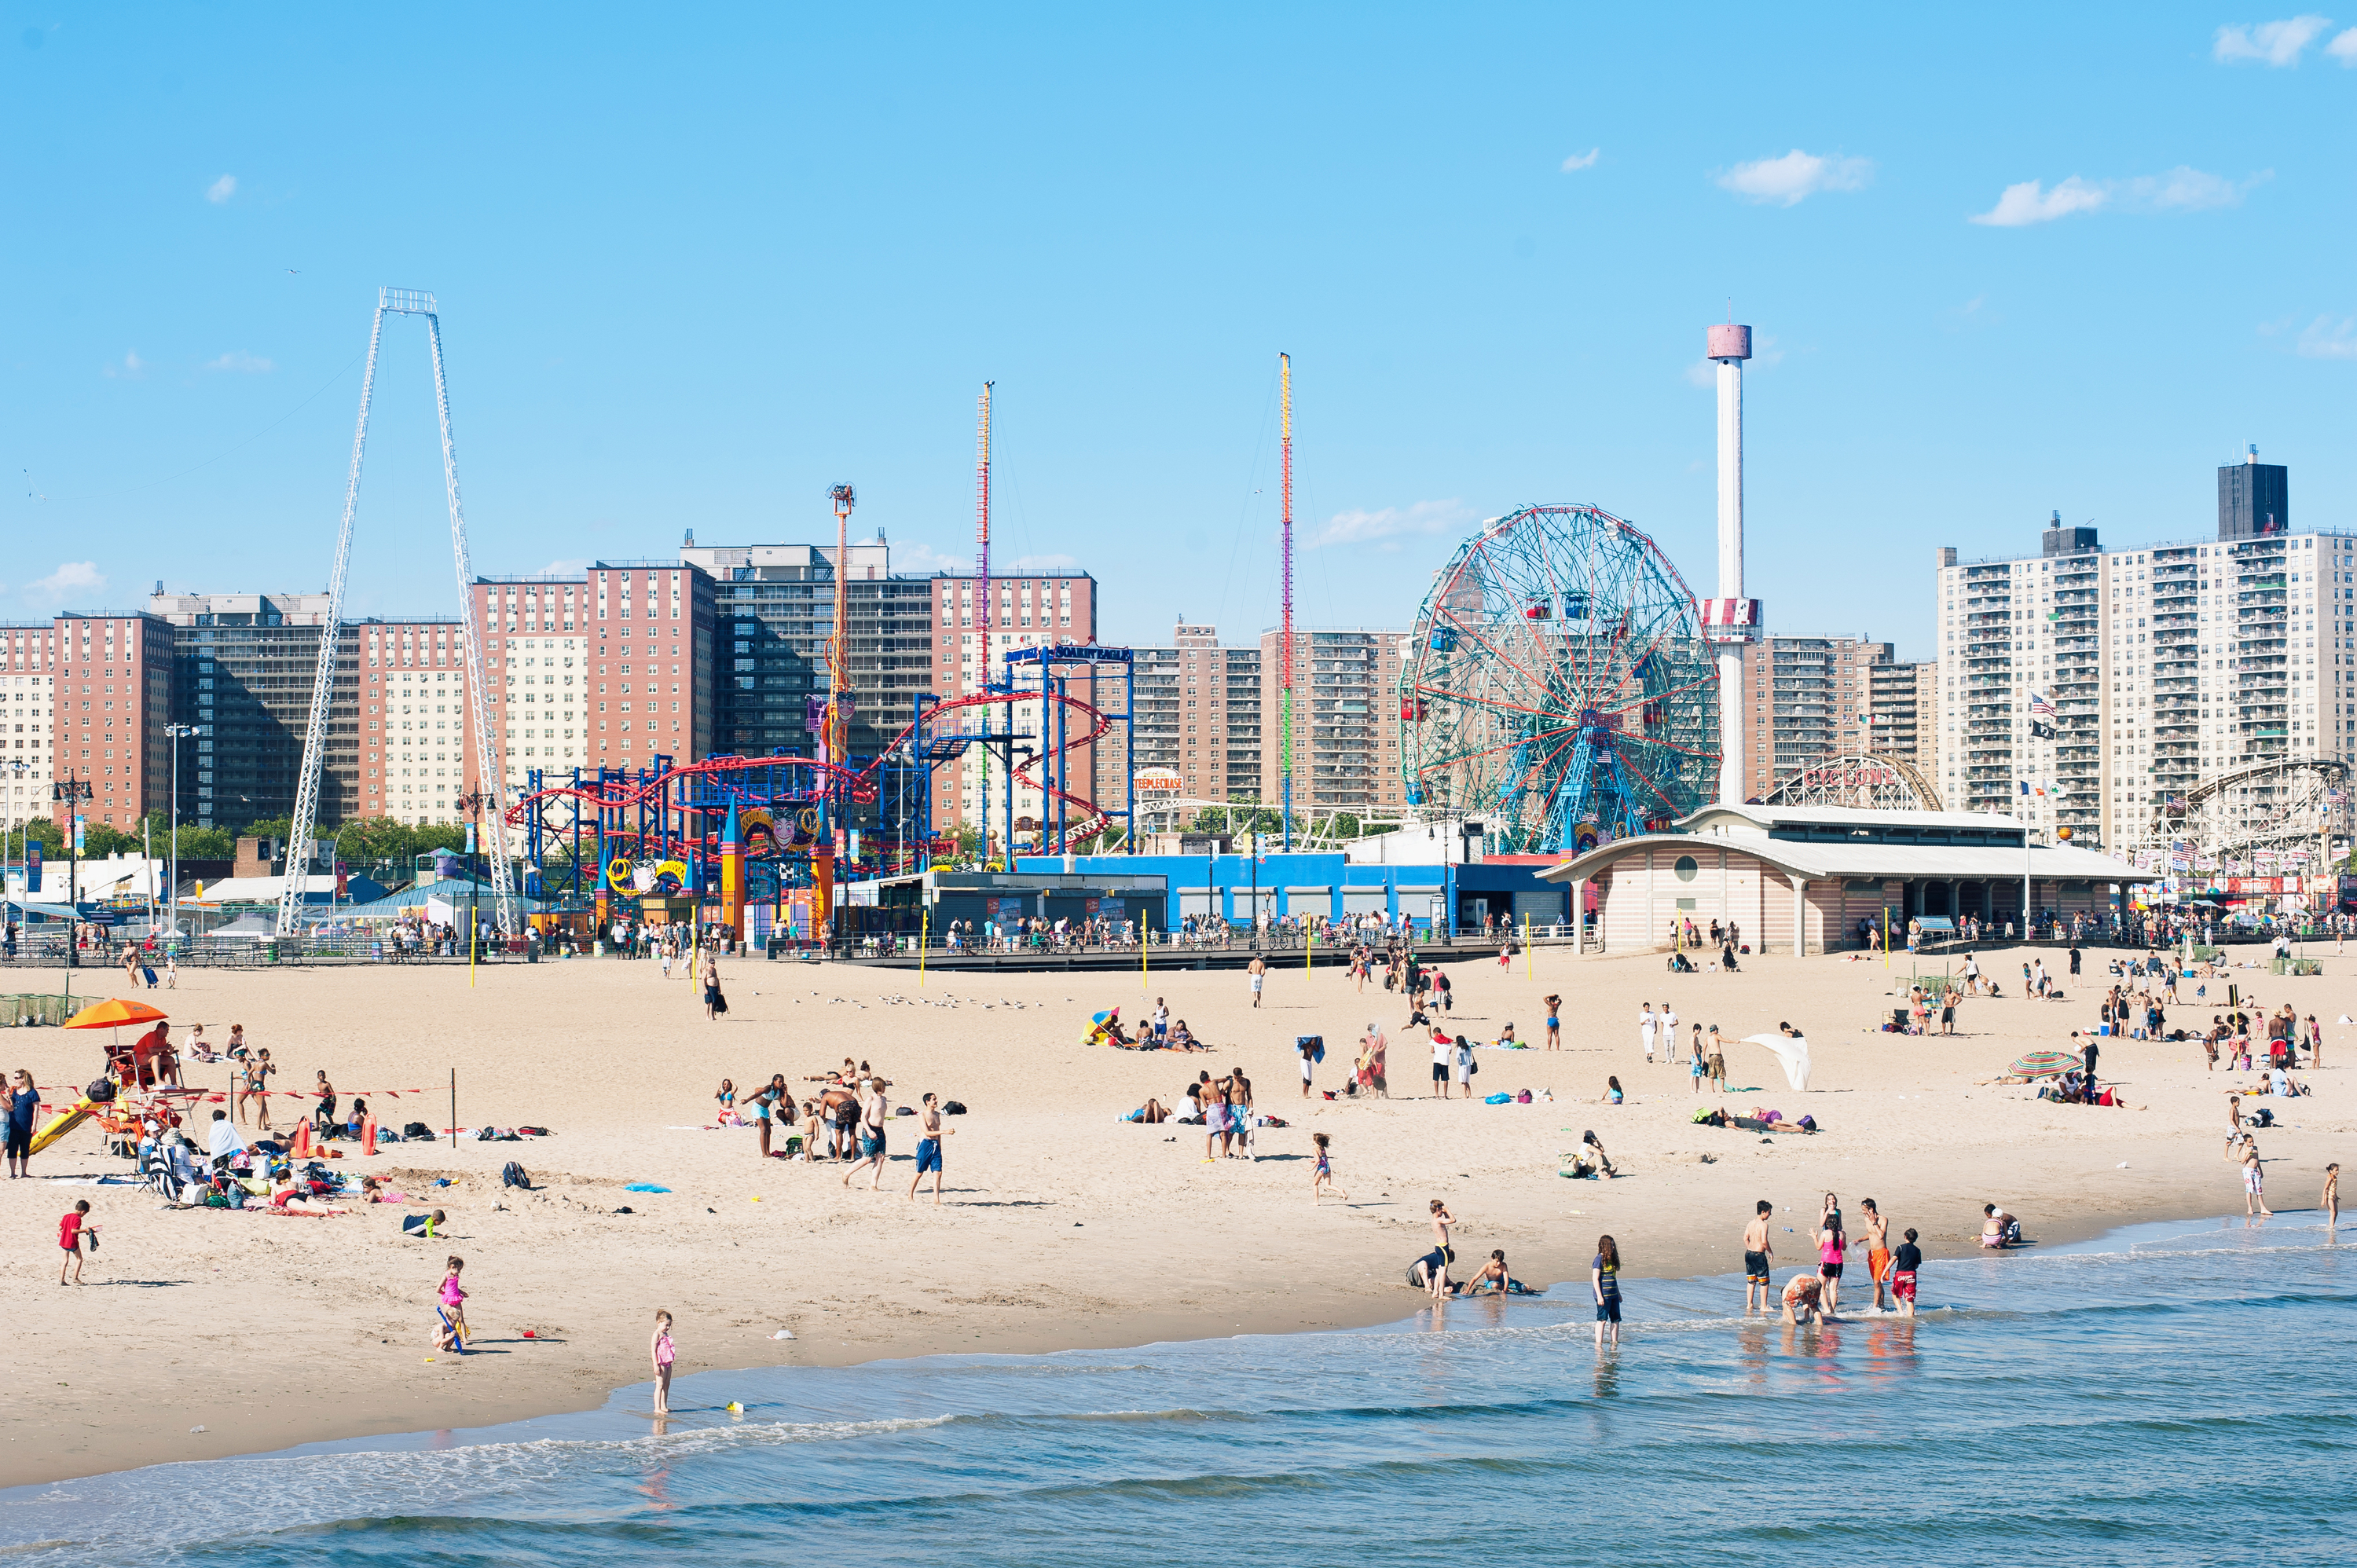 Coney Island officially opens for the season this weekend